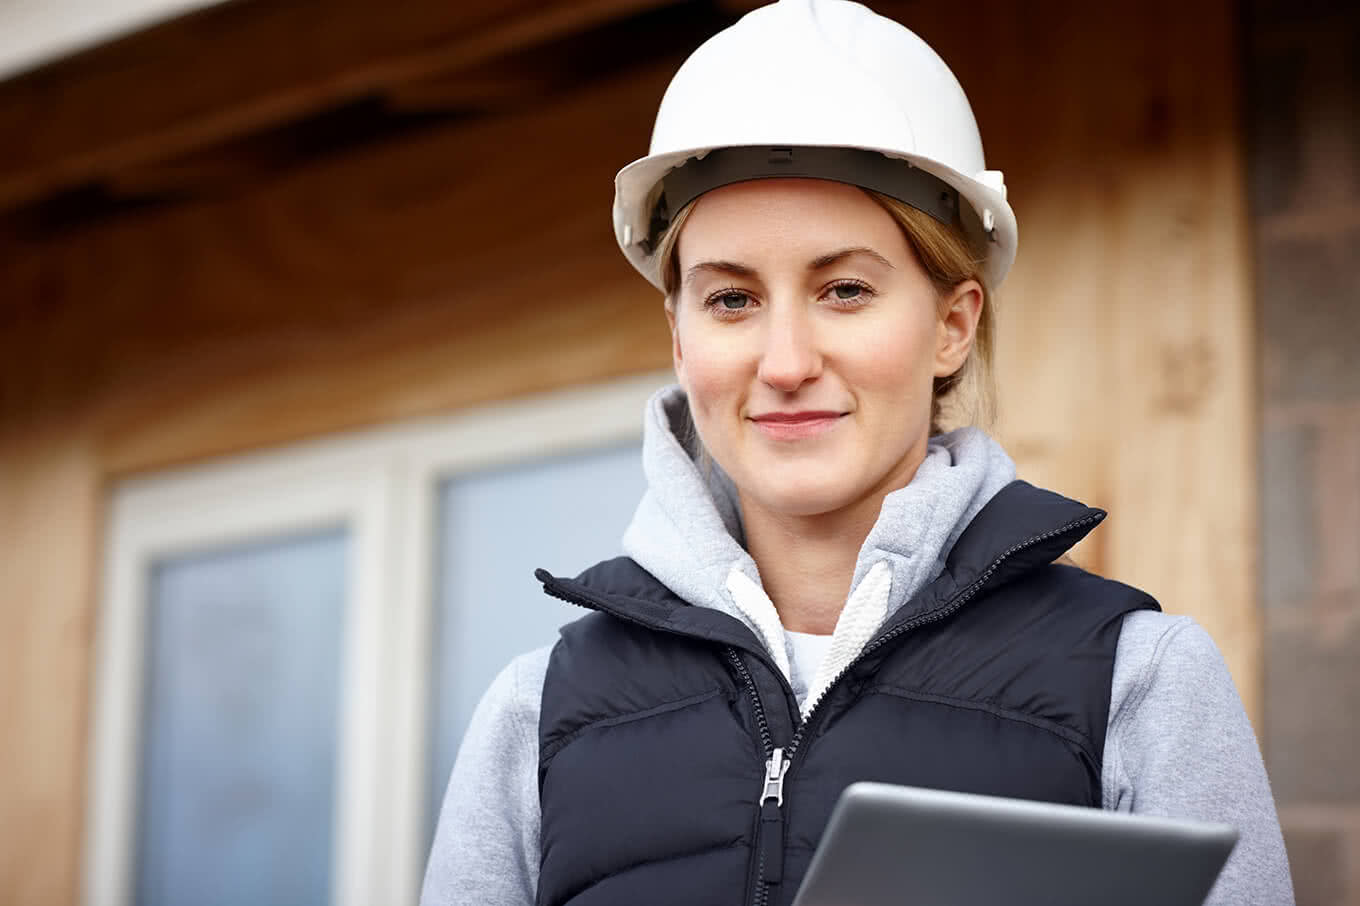 Architect with a tablet computer during a building inspection.